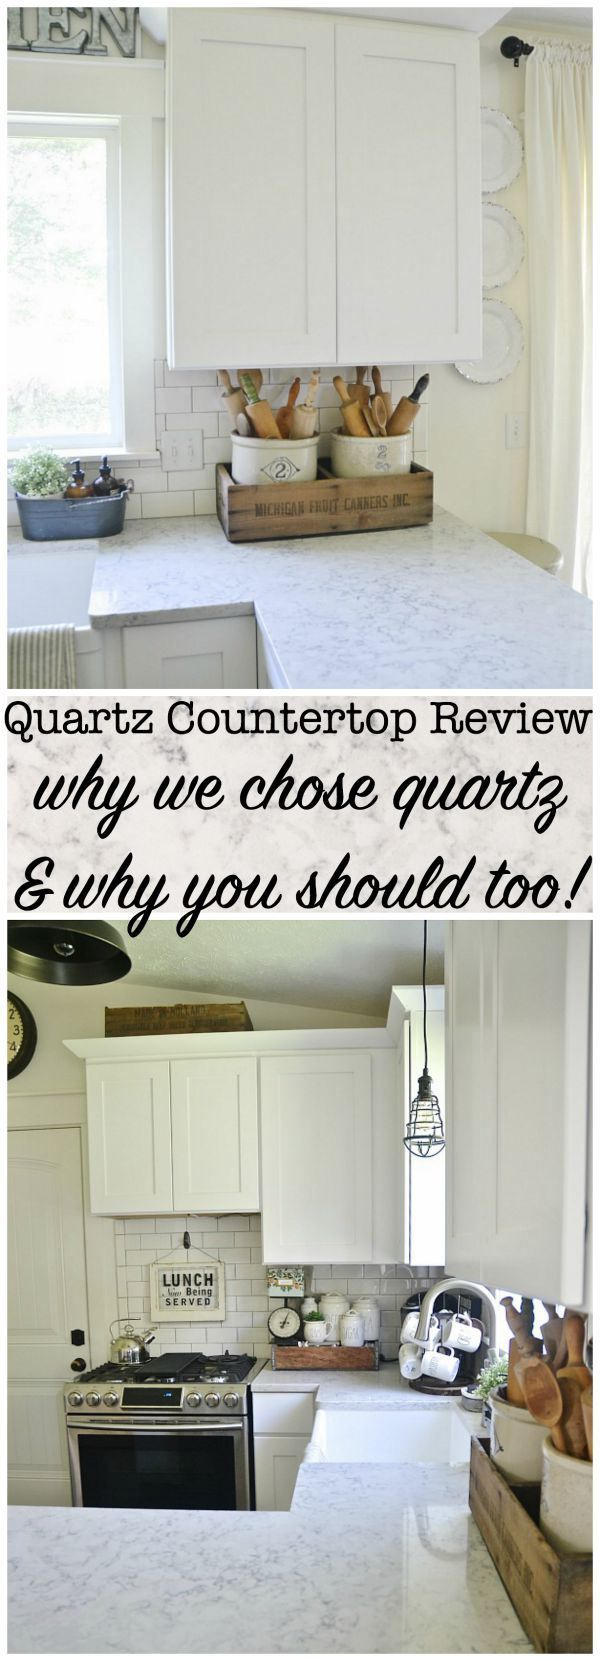 Quartz Countertop Review - Pros & Cons - Why we picked quartz & why you should too. A must pin for anyone who plans to ever remodel their kitchen!